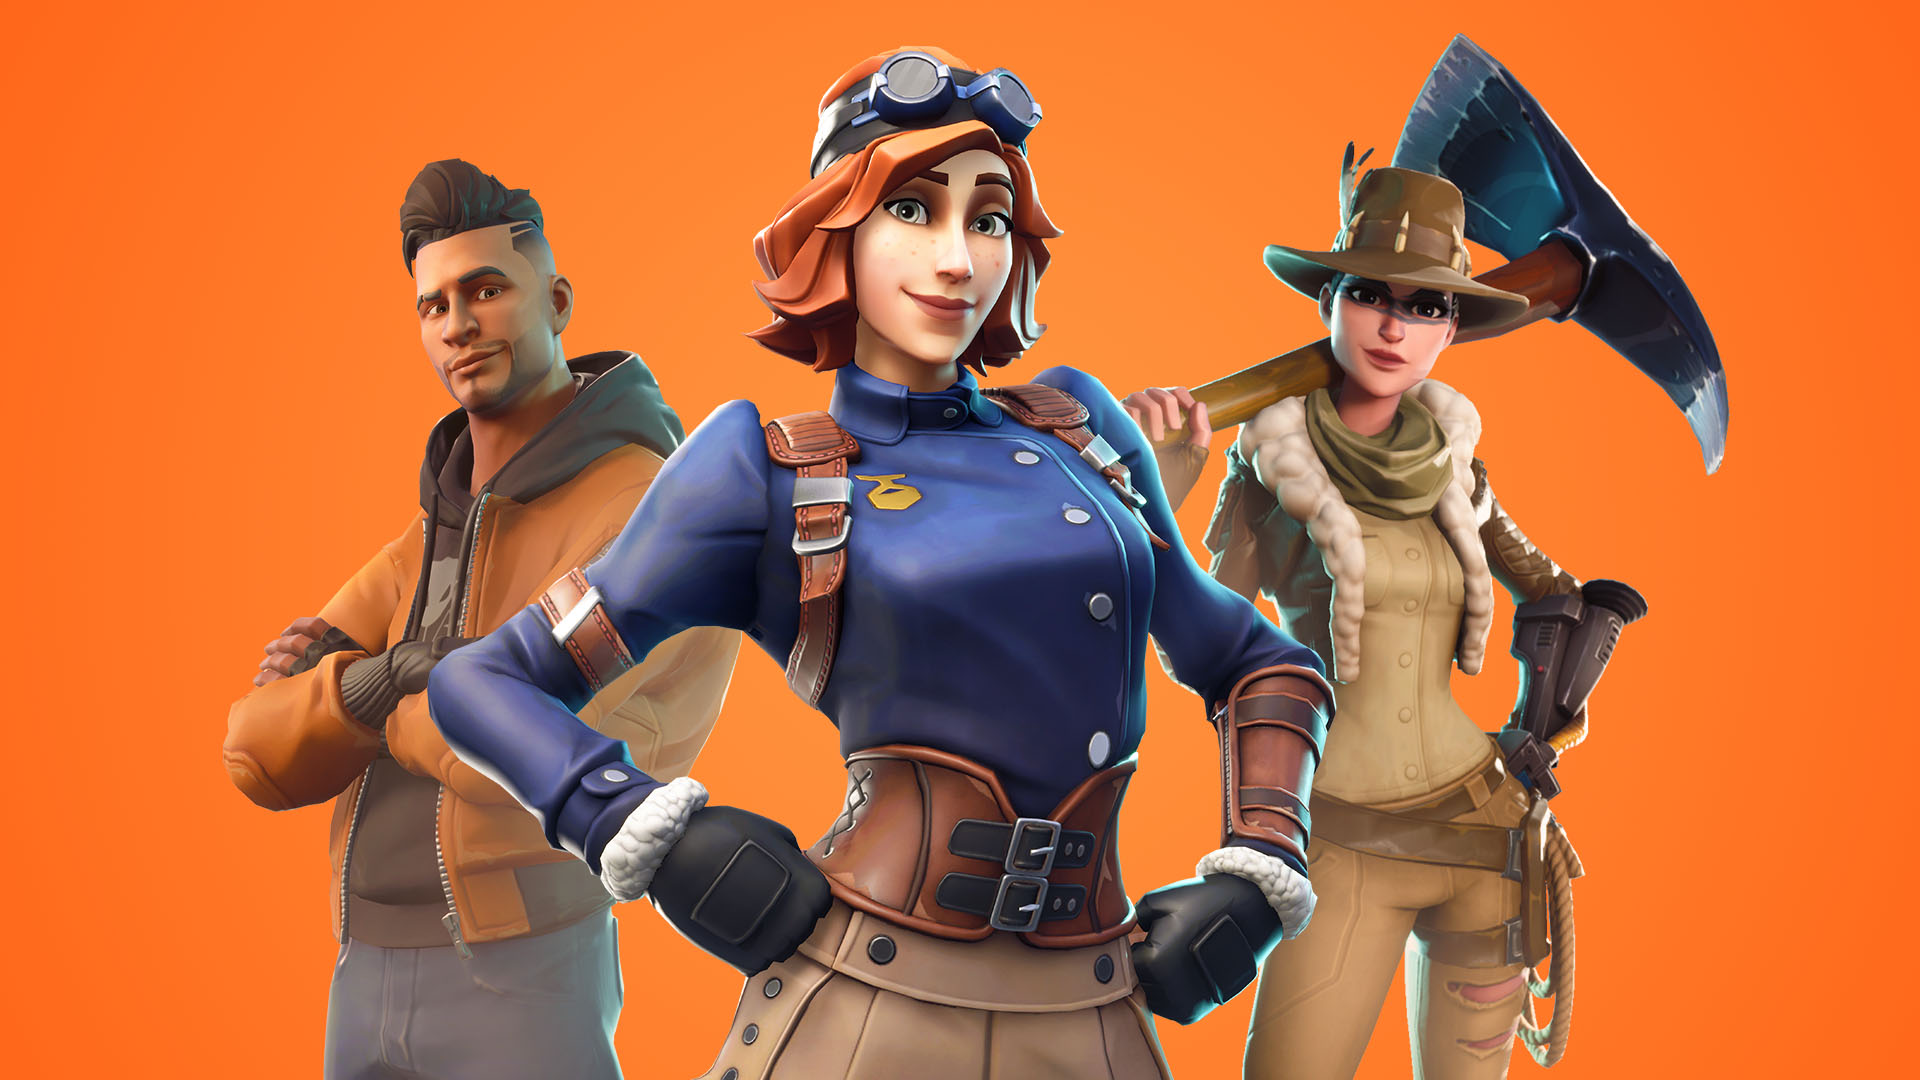 A trio of Fortnite characters pose in front of a bold orange background.